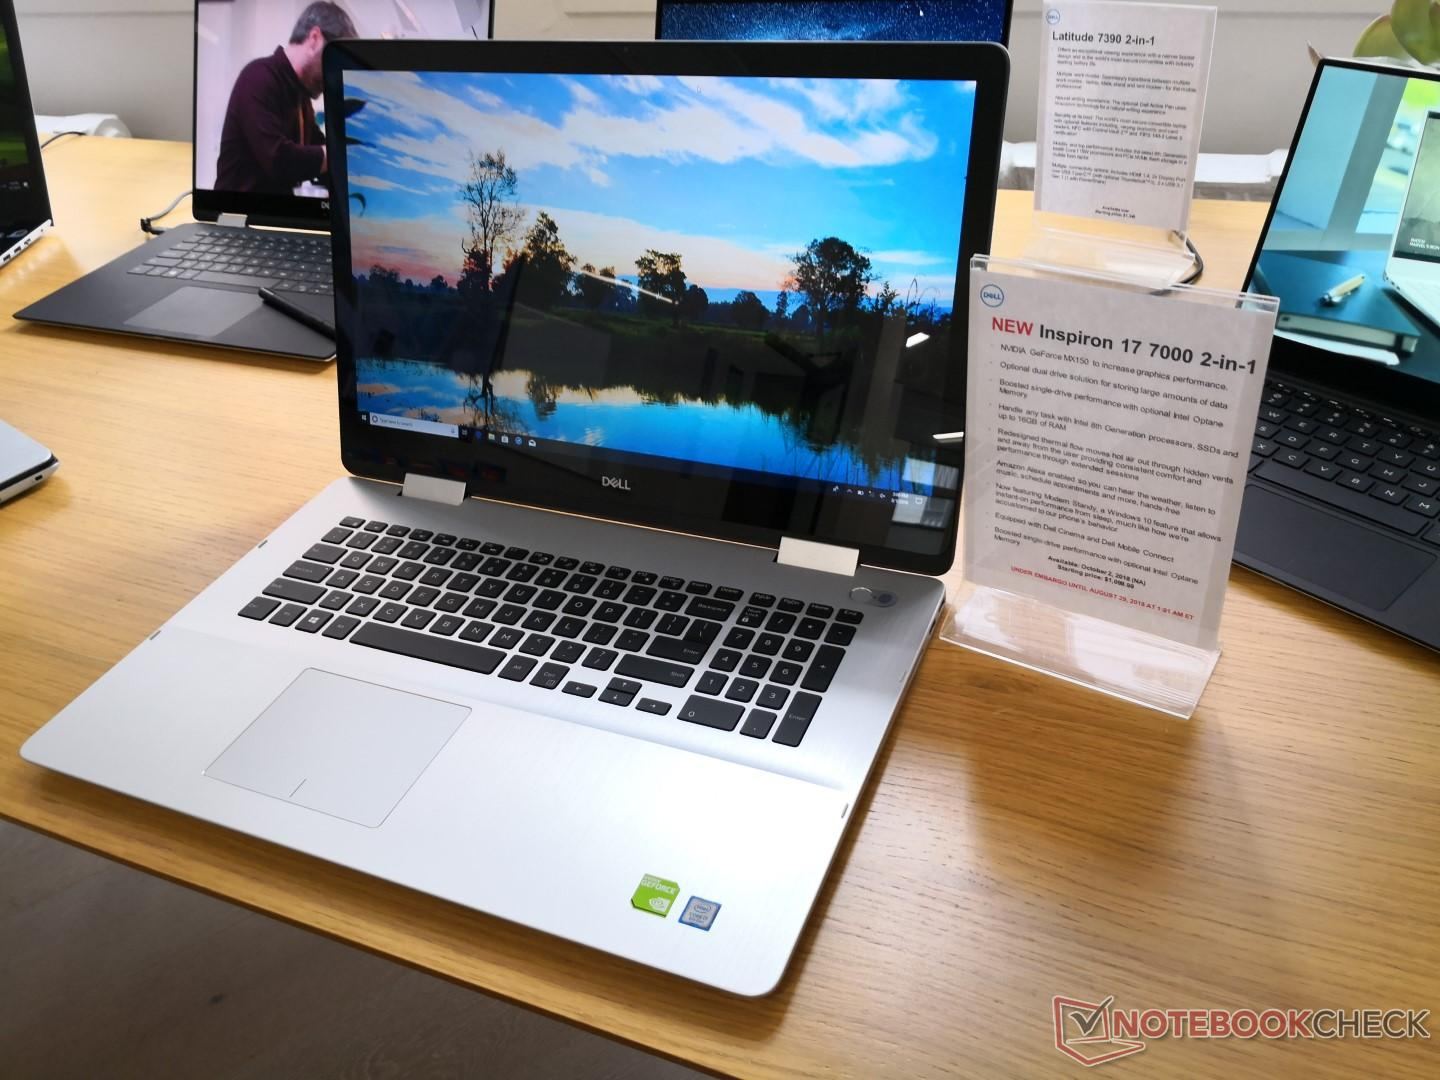 Dell is refreshing its entire Inspiron 7000 family with new